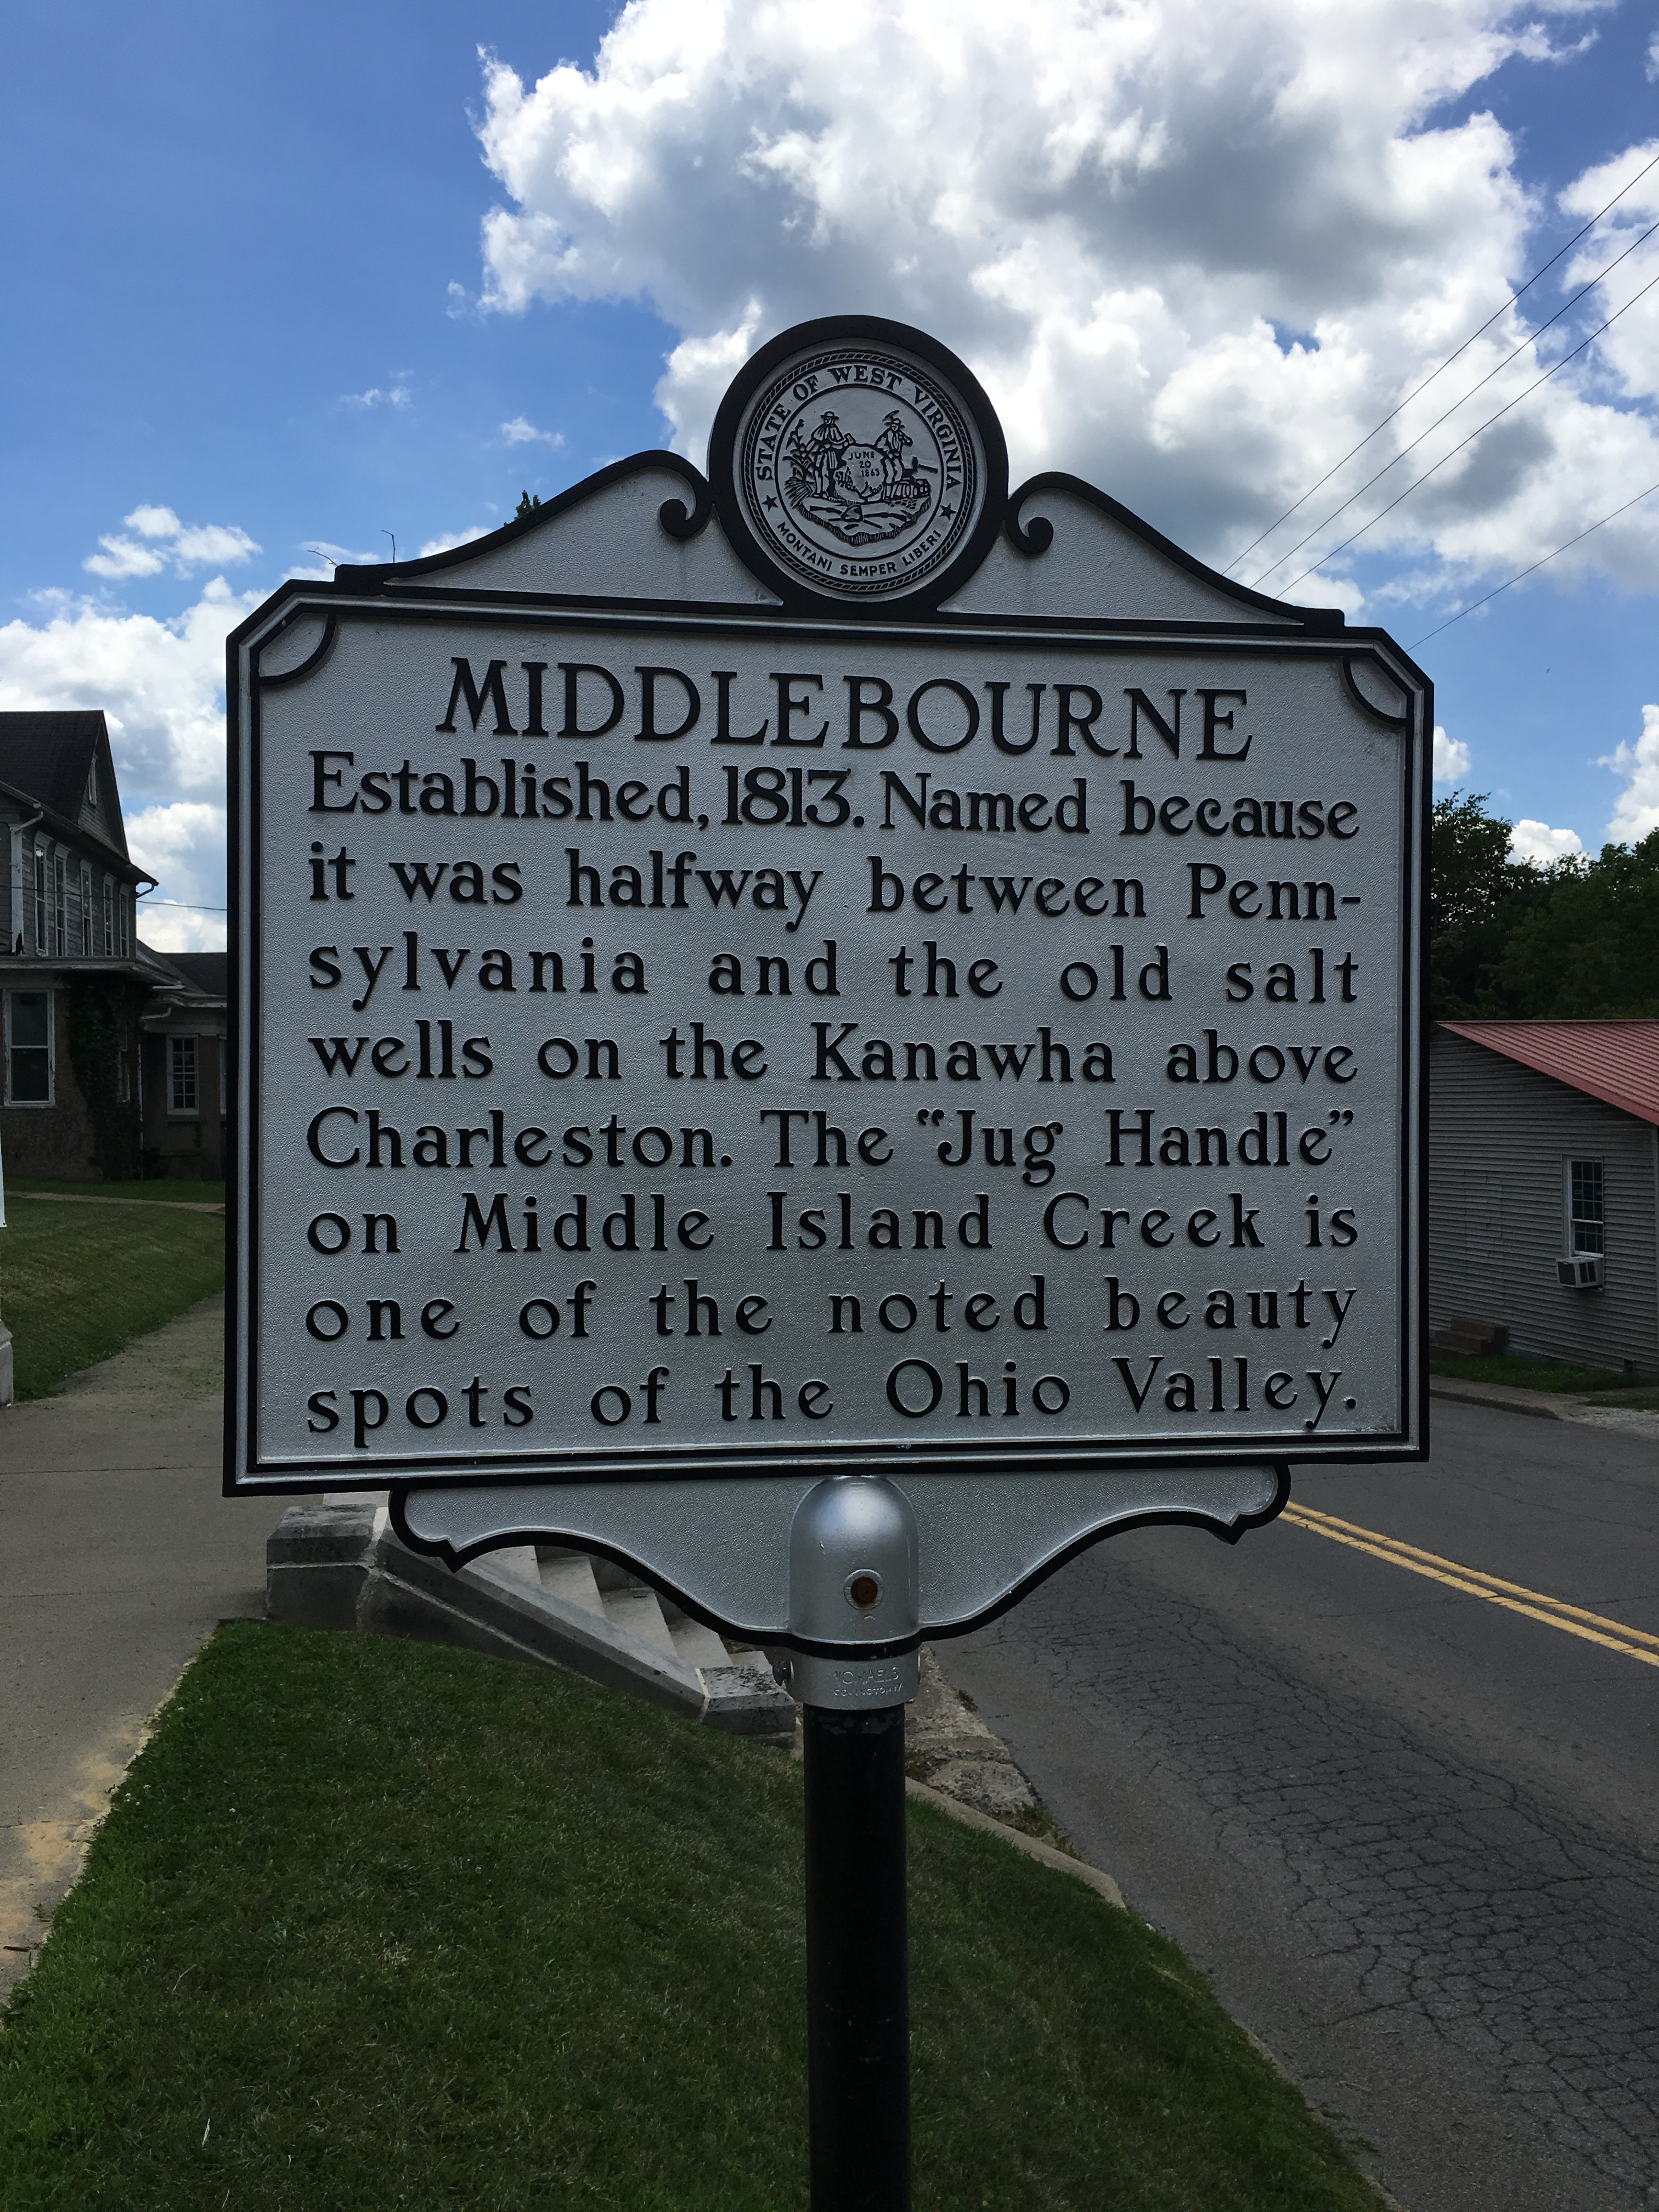 Middlebourne signage